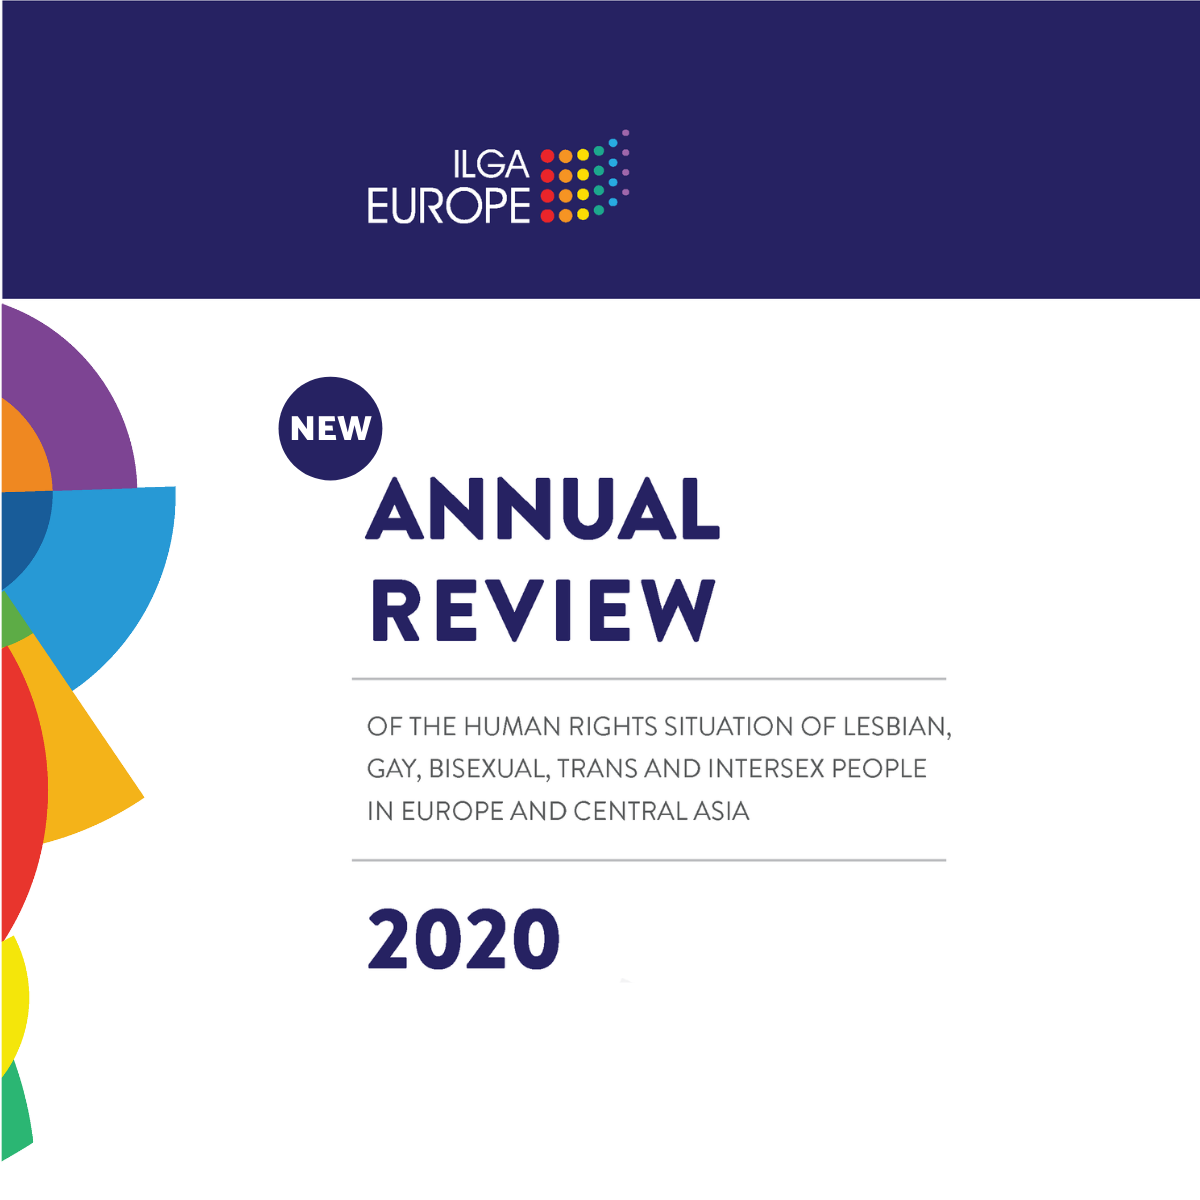 ILGA-Europe's Annual Review of the Human Rights Situation of LGBTI people